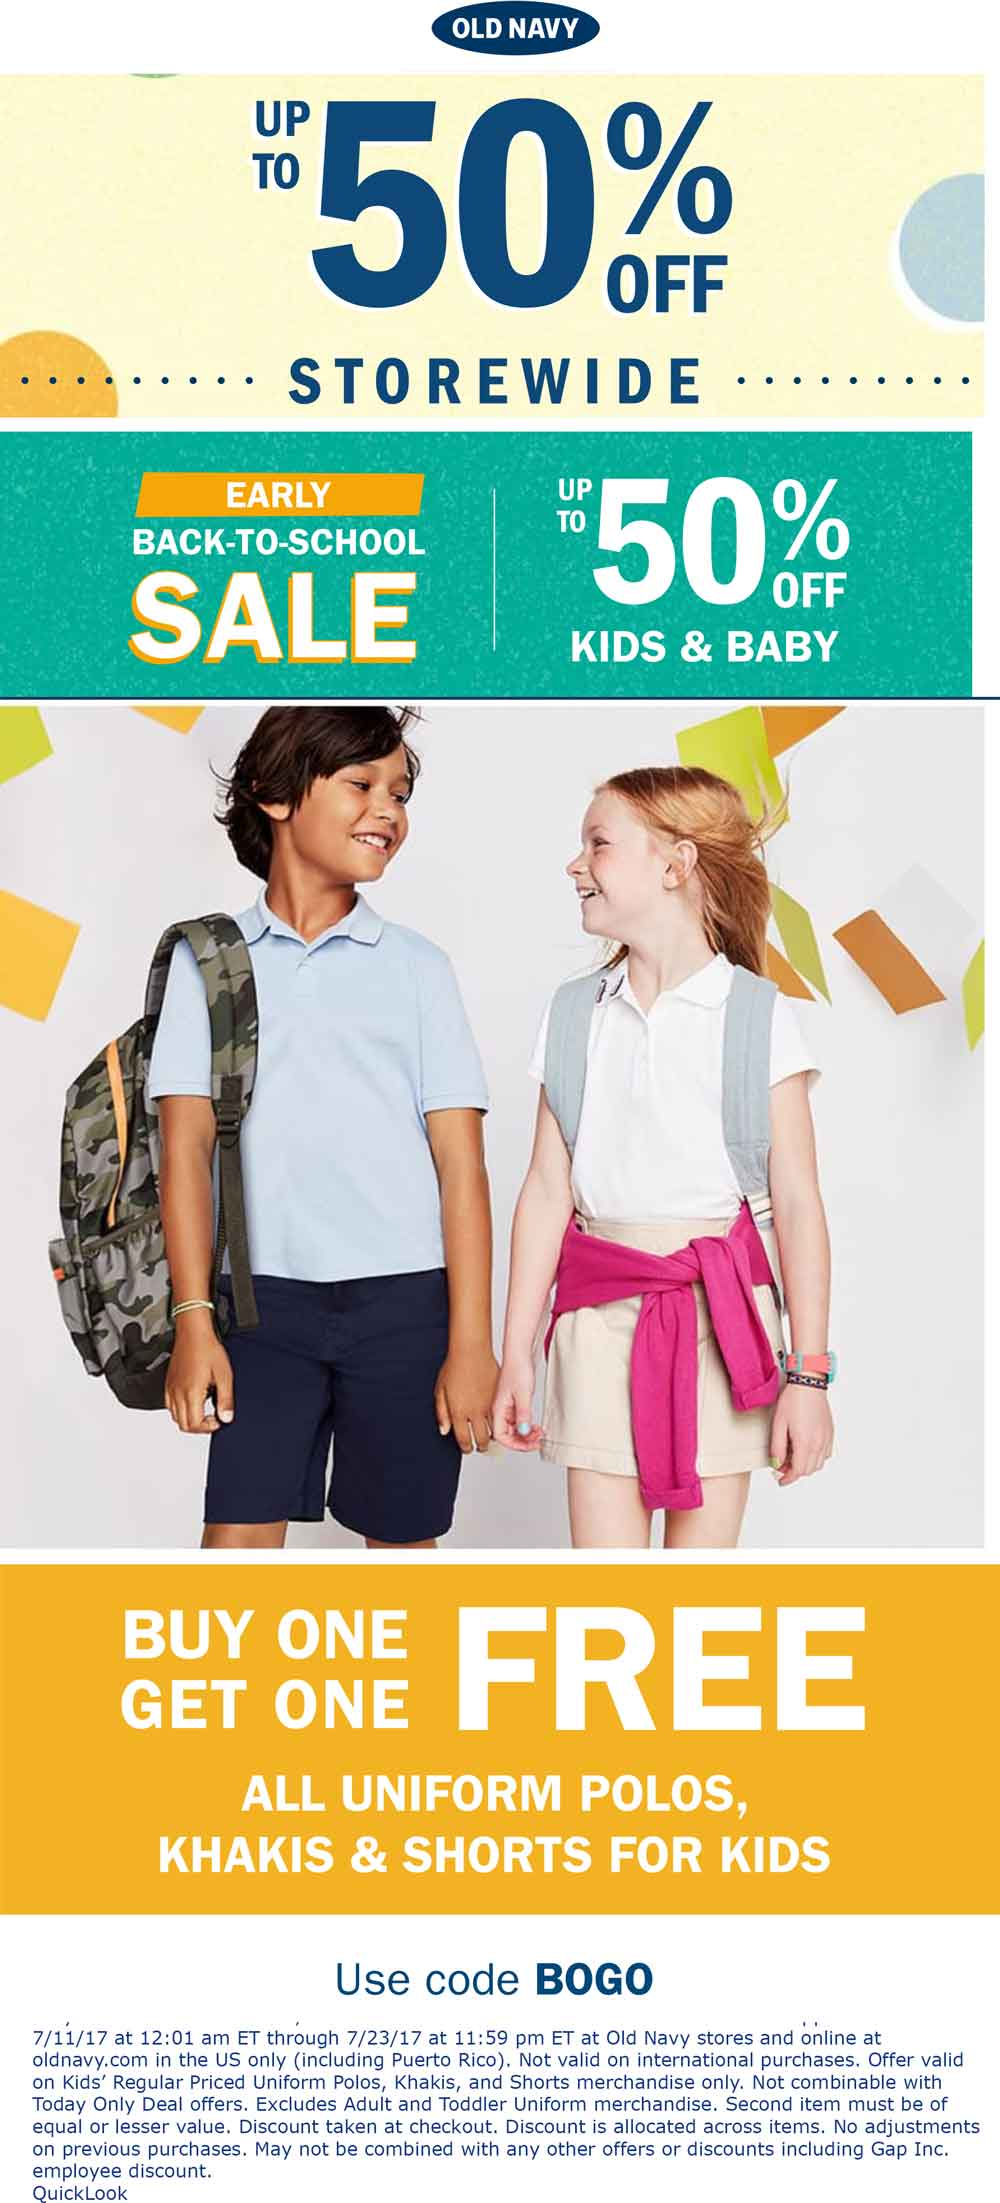 Old Navy Coupon October 2018 Second kids uniform free & more at Old Navy, or online via promo code BOGO